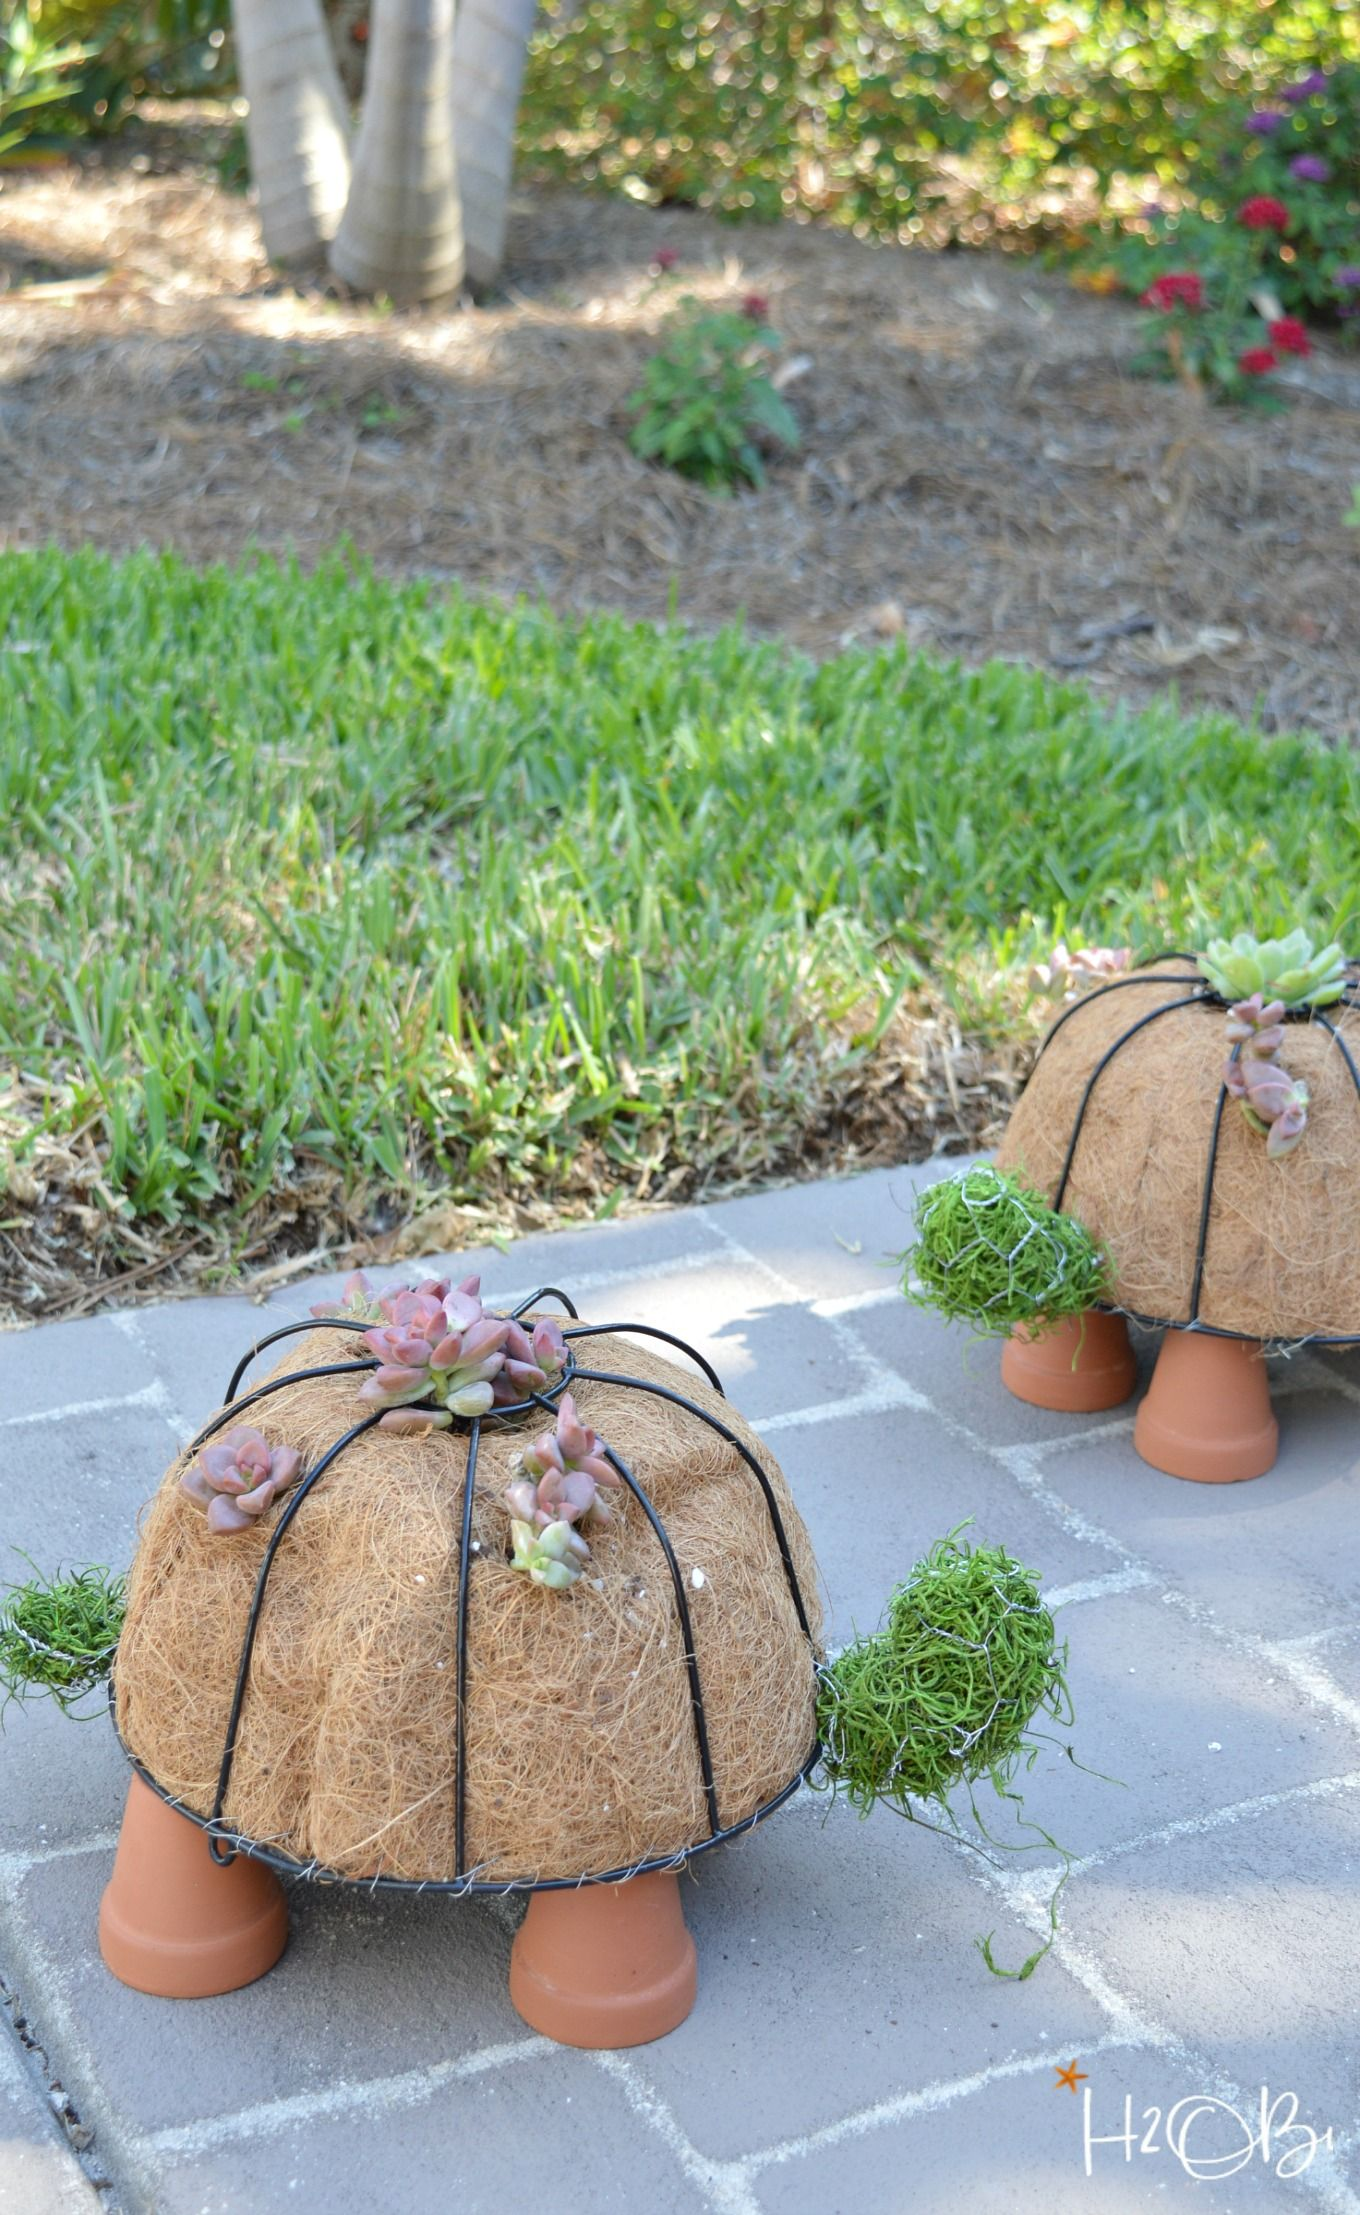 How to Make a DIY Turtle Topiary | Diy garden decor, Topiary and ...